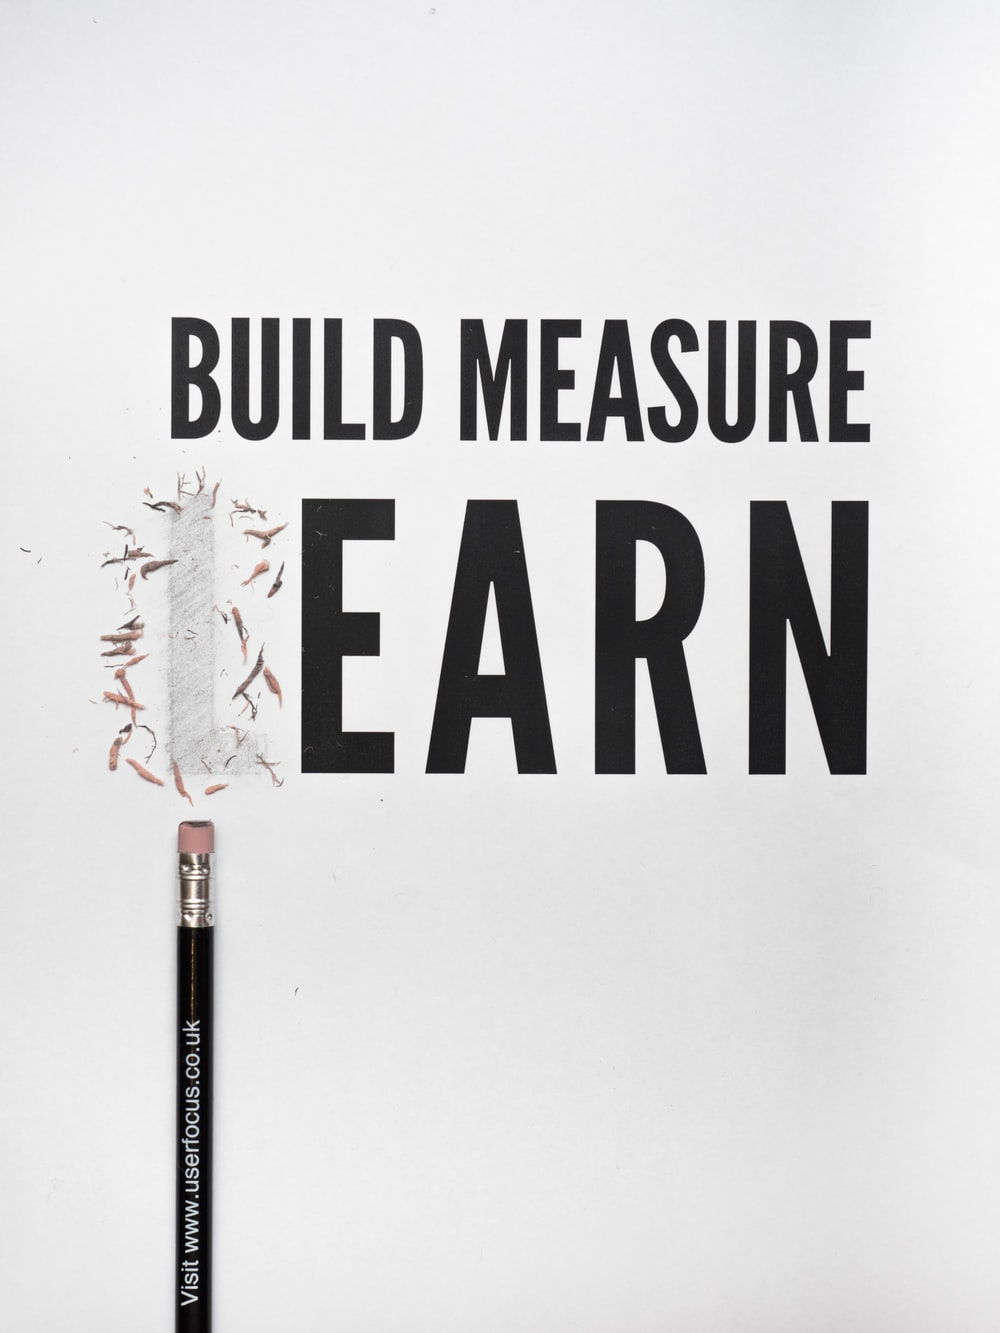 black pencil with build measure earn text overlay